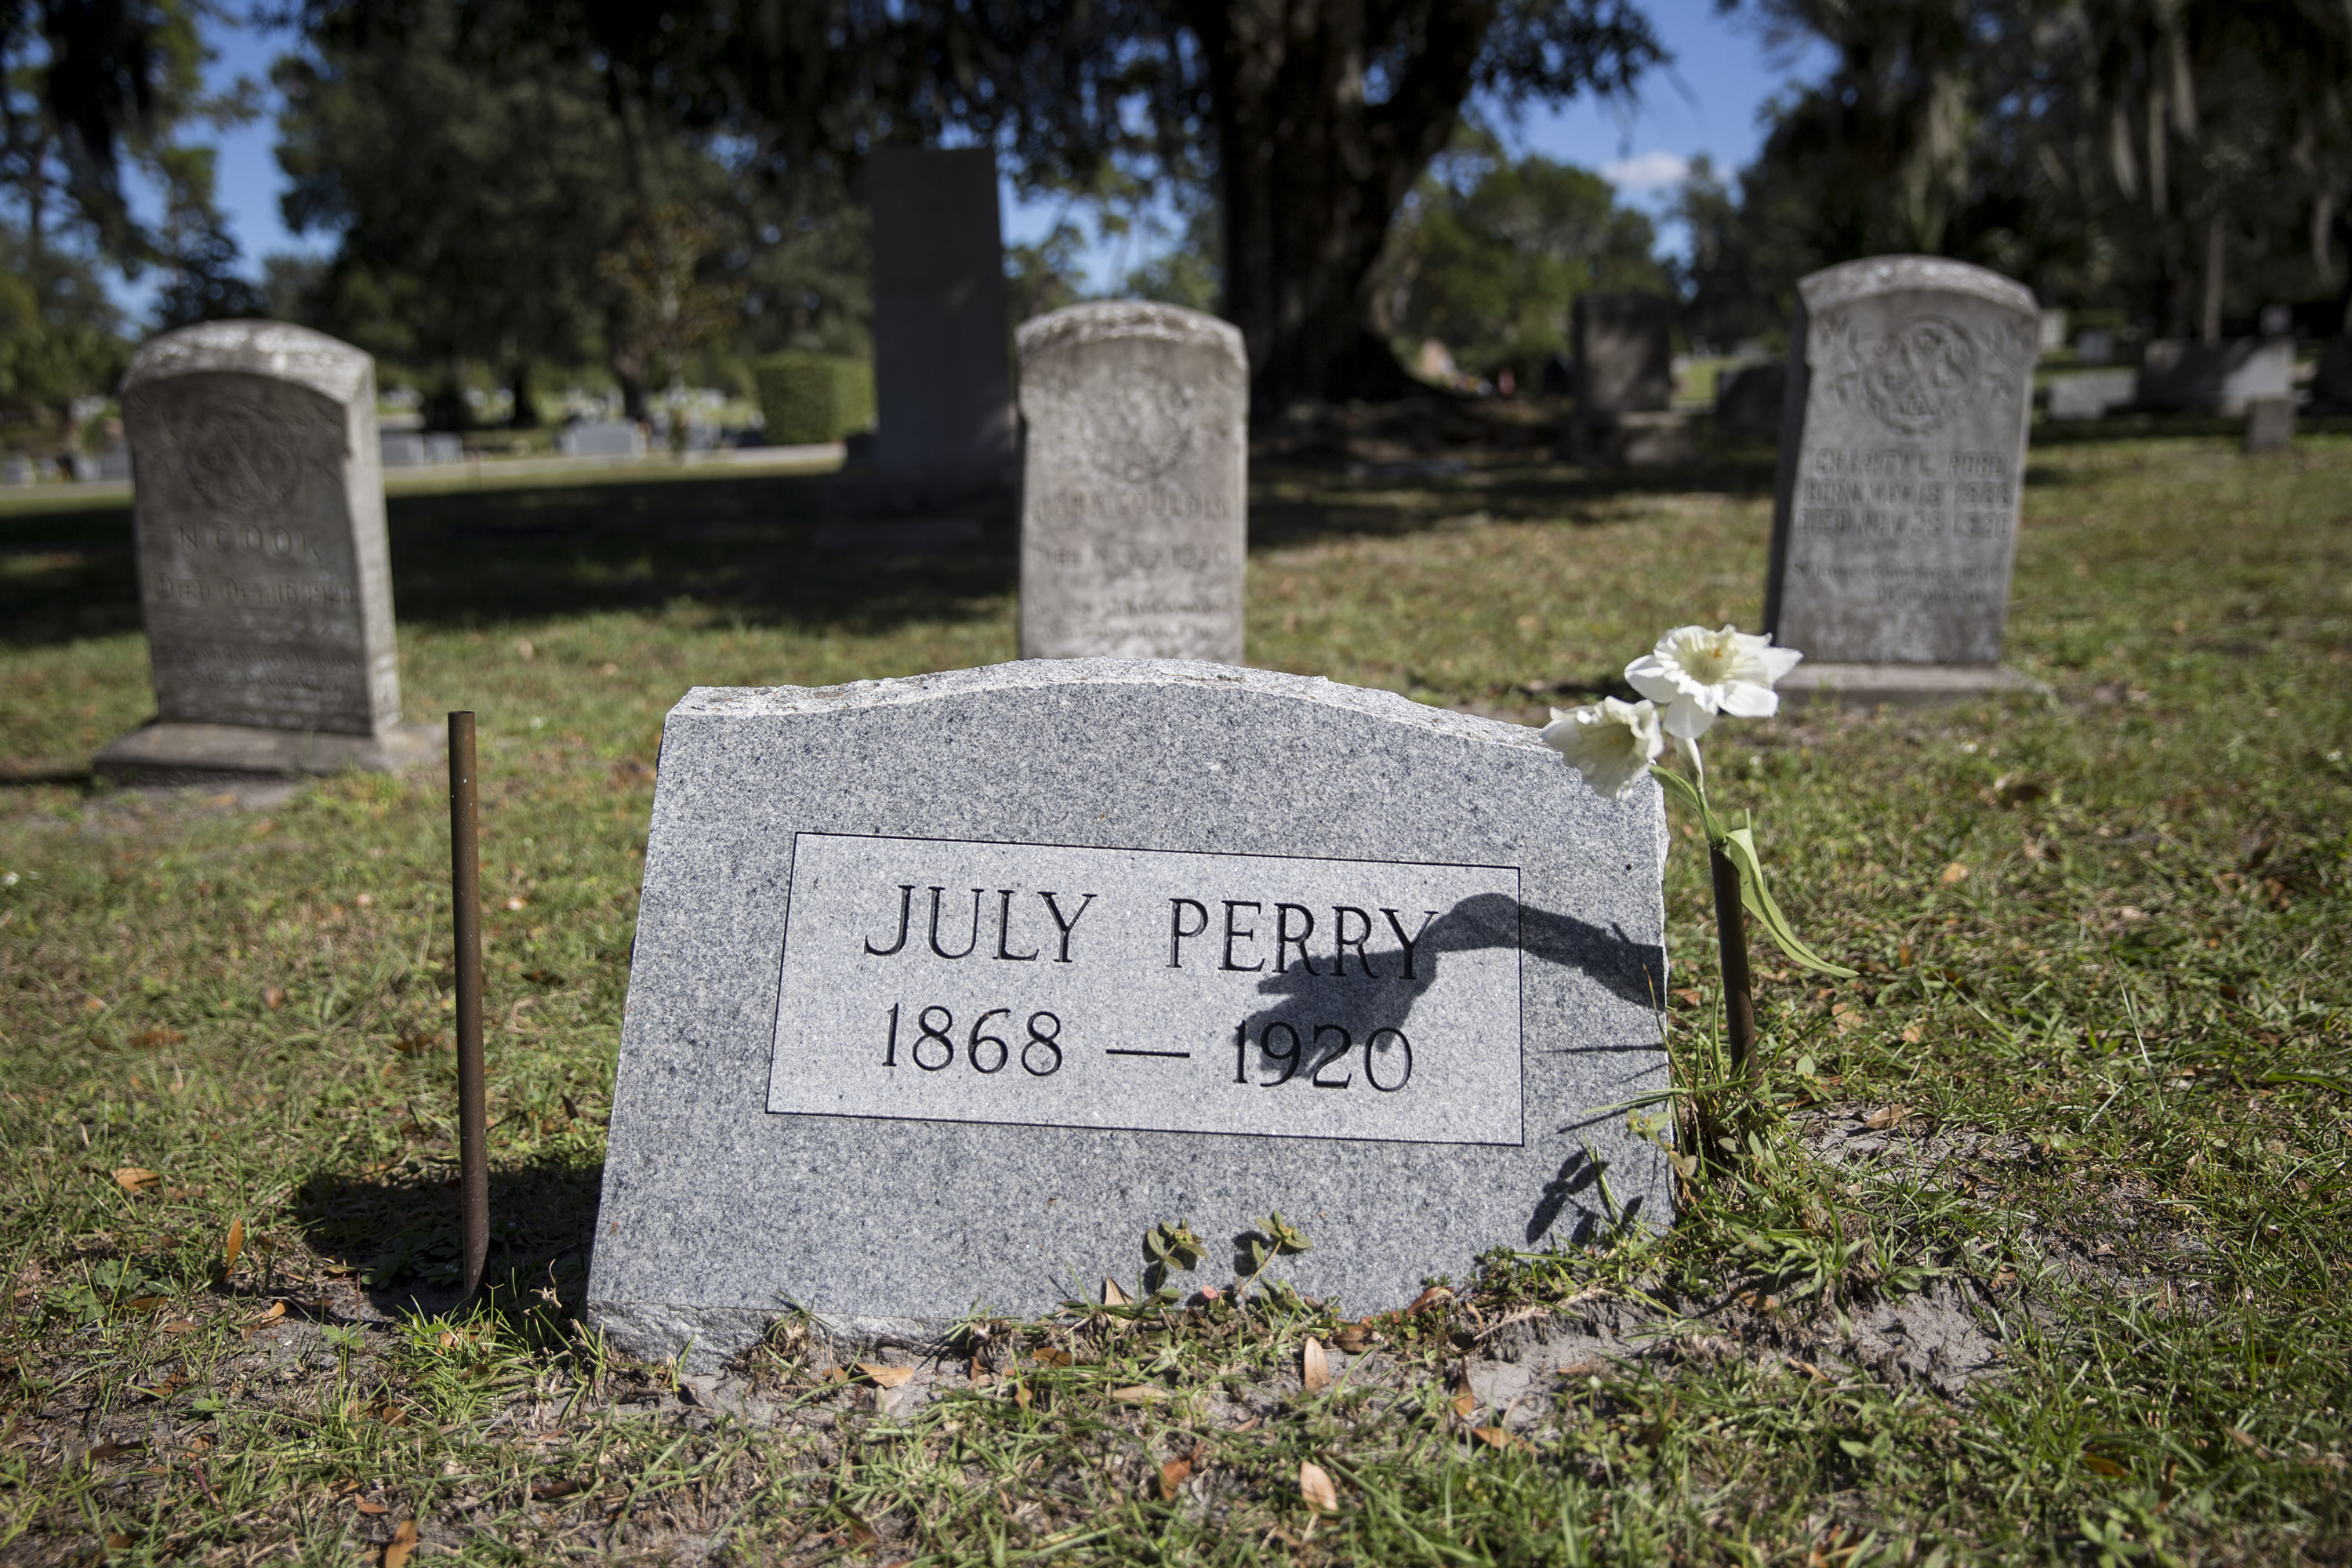 July Perry's grave which is at Greenwood Cemetery in Orlando.